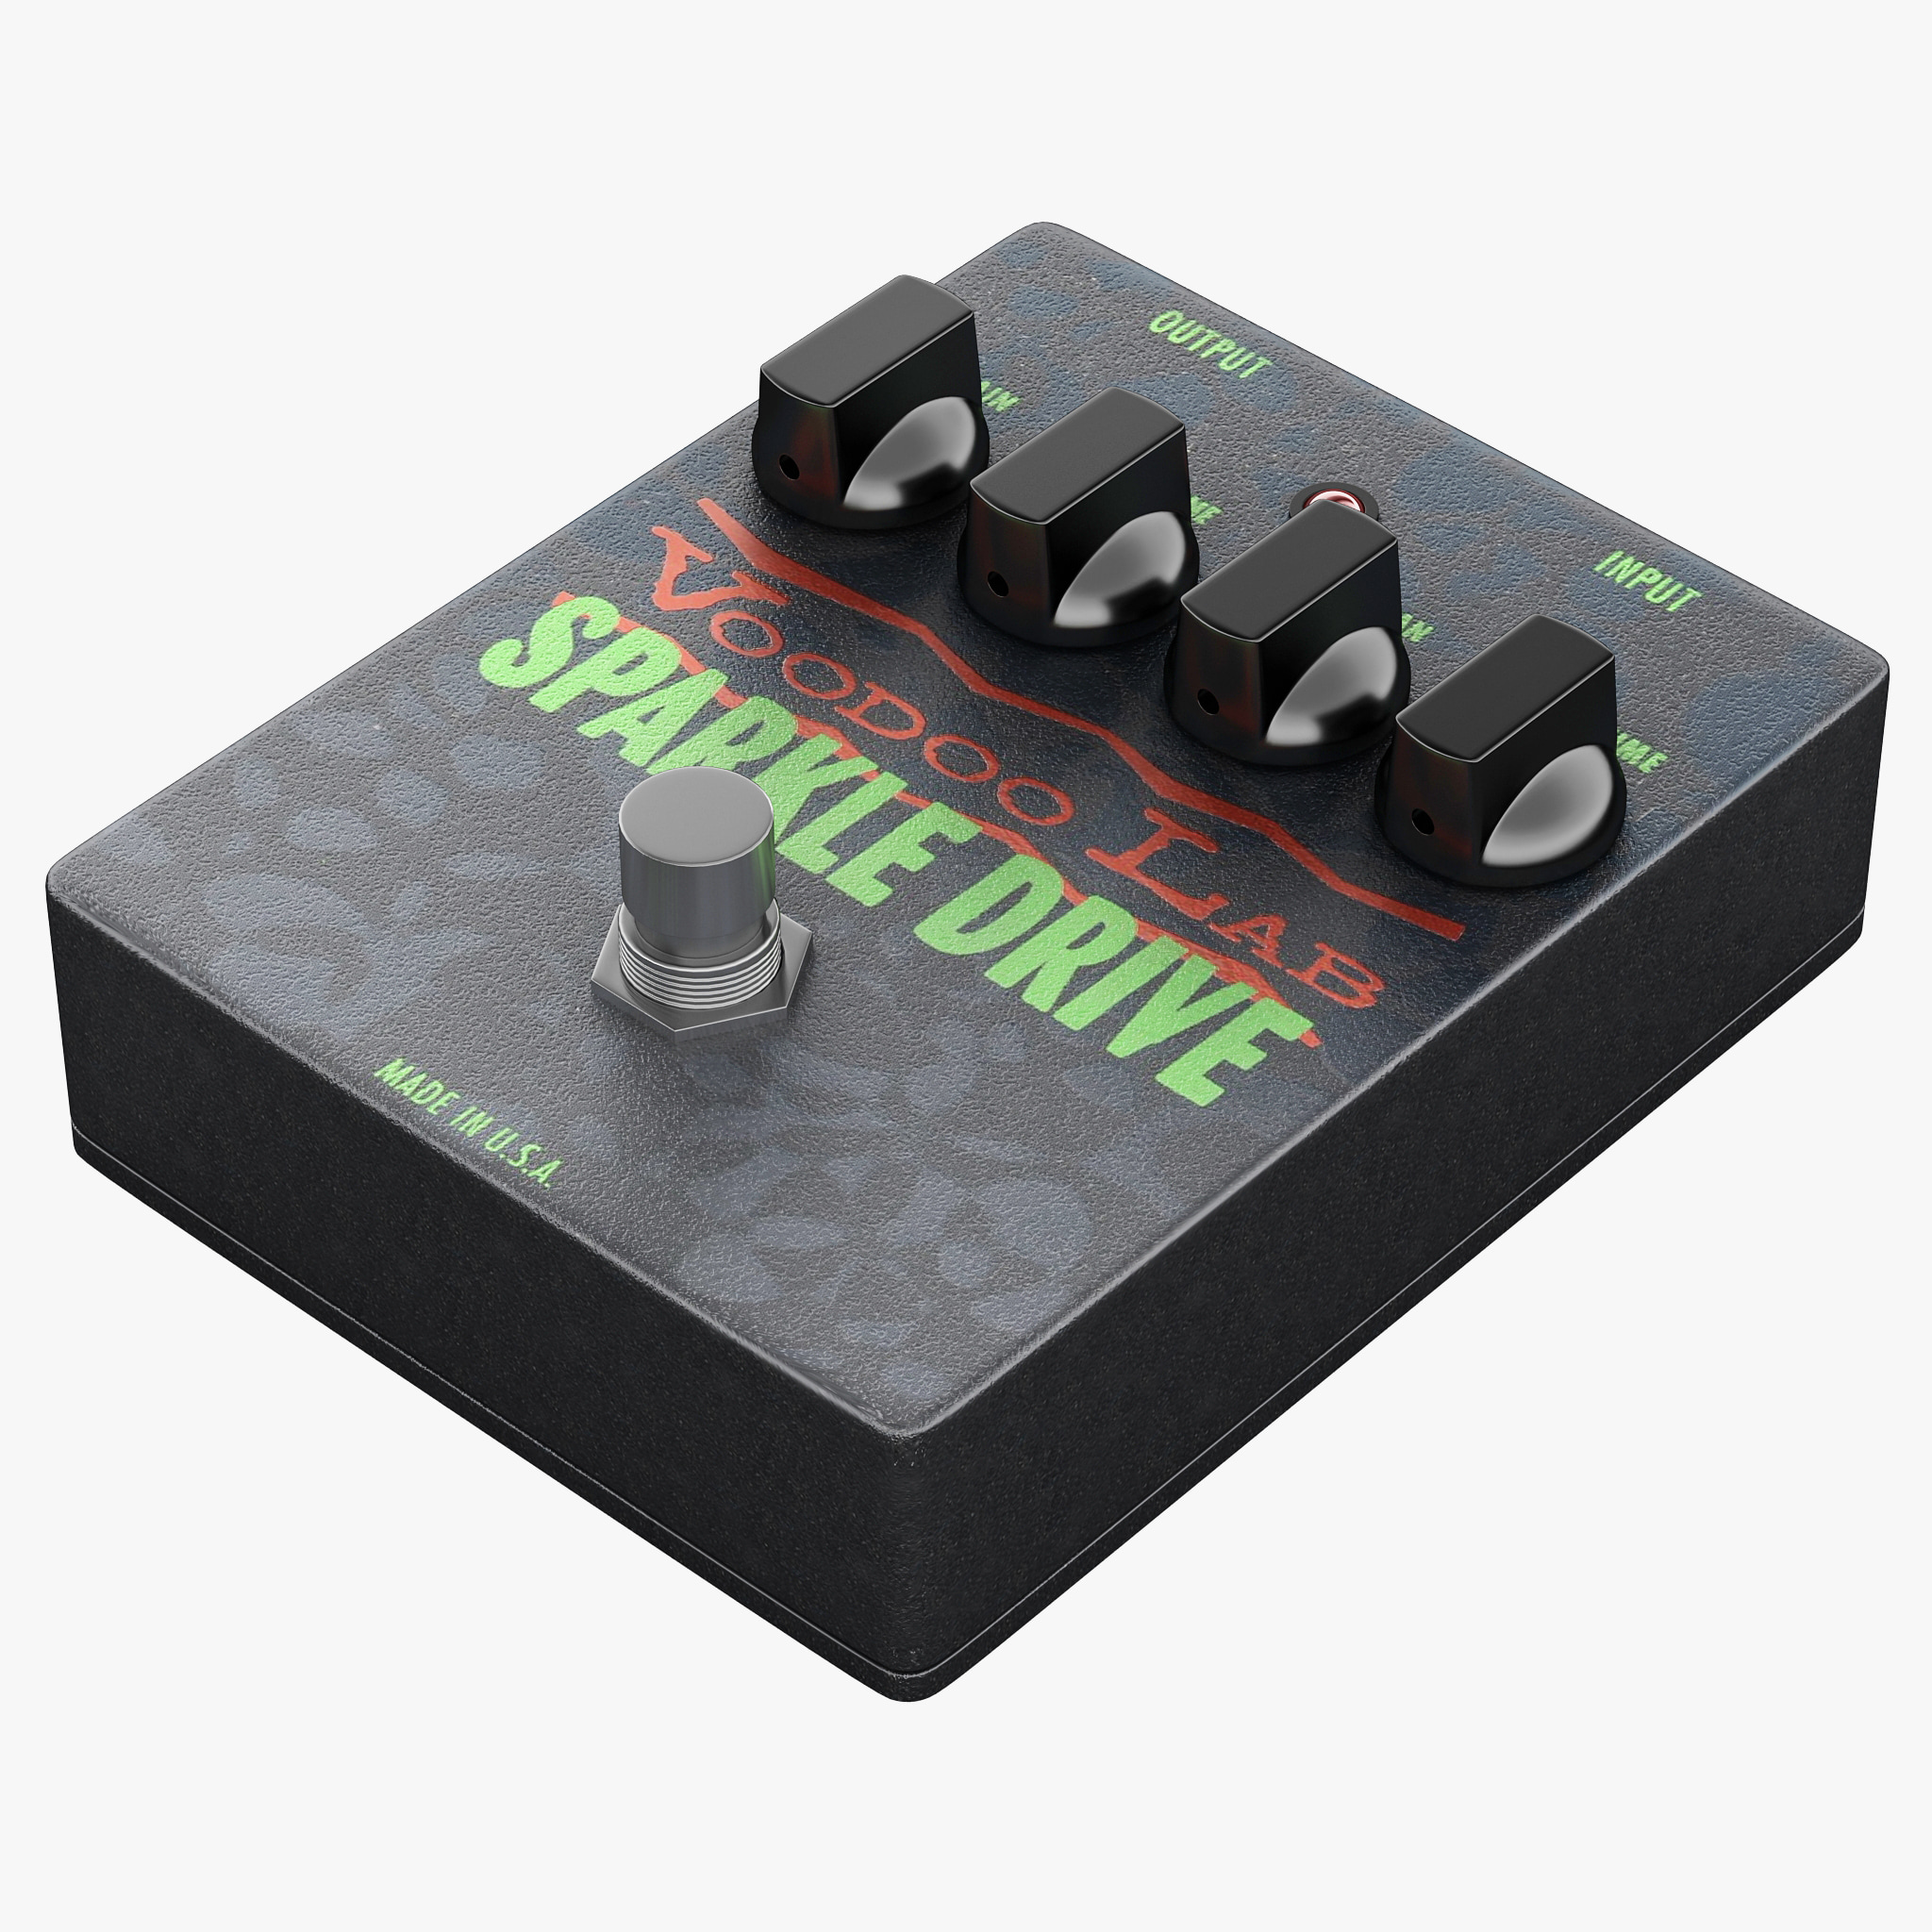 Guitar Overdrive Pedal Voodoo Lab Sparkle Drive_1.jpg